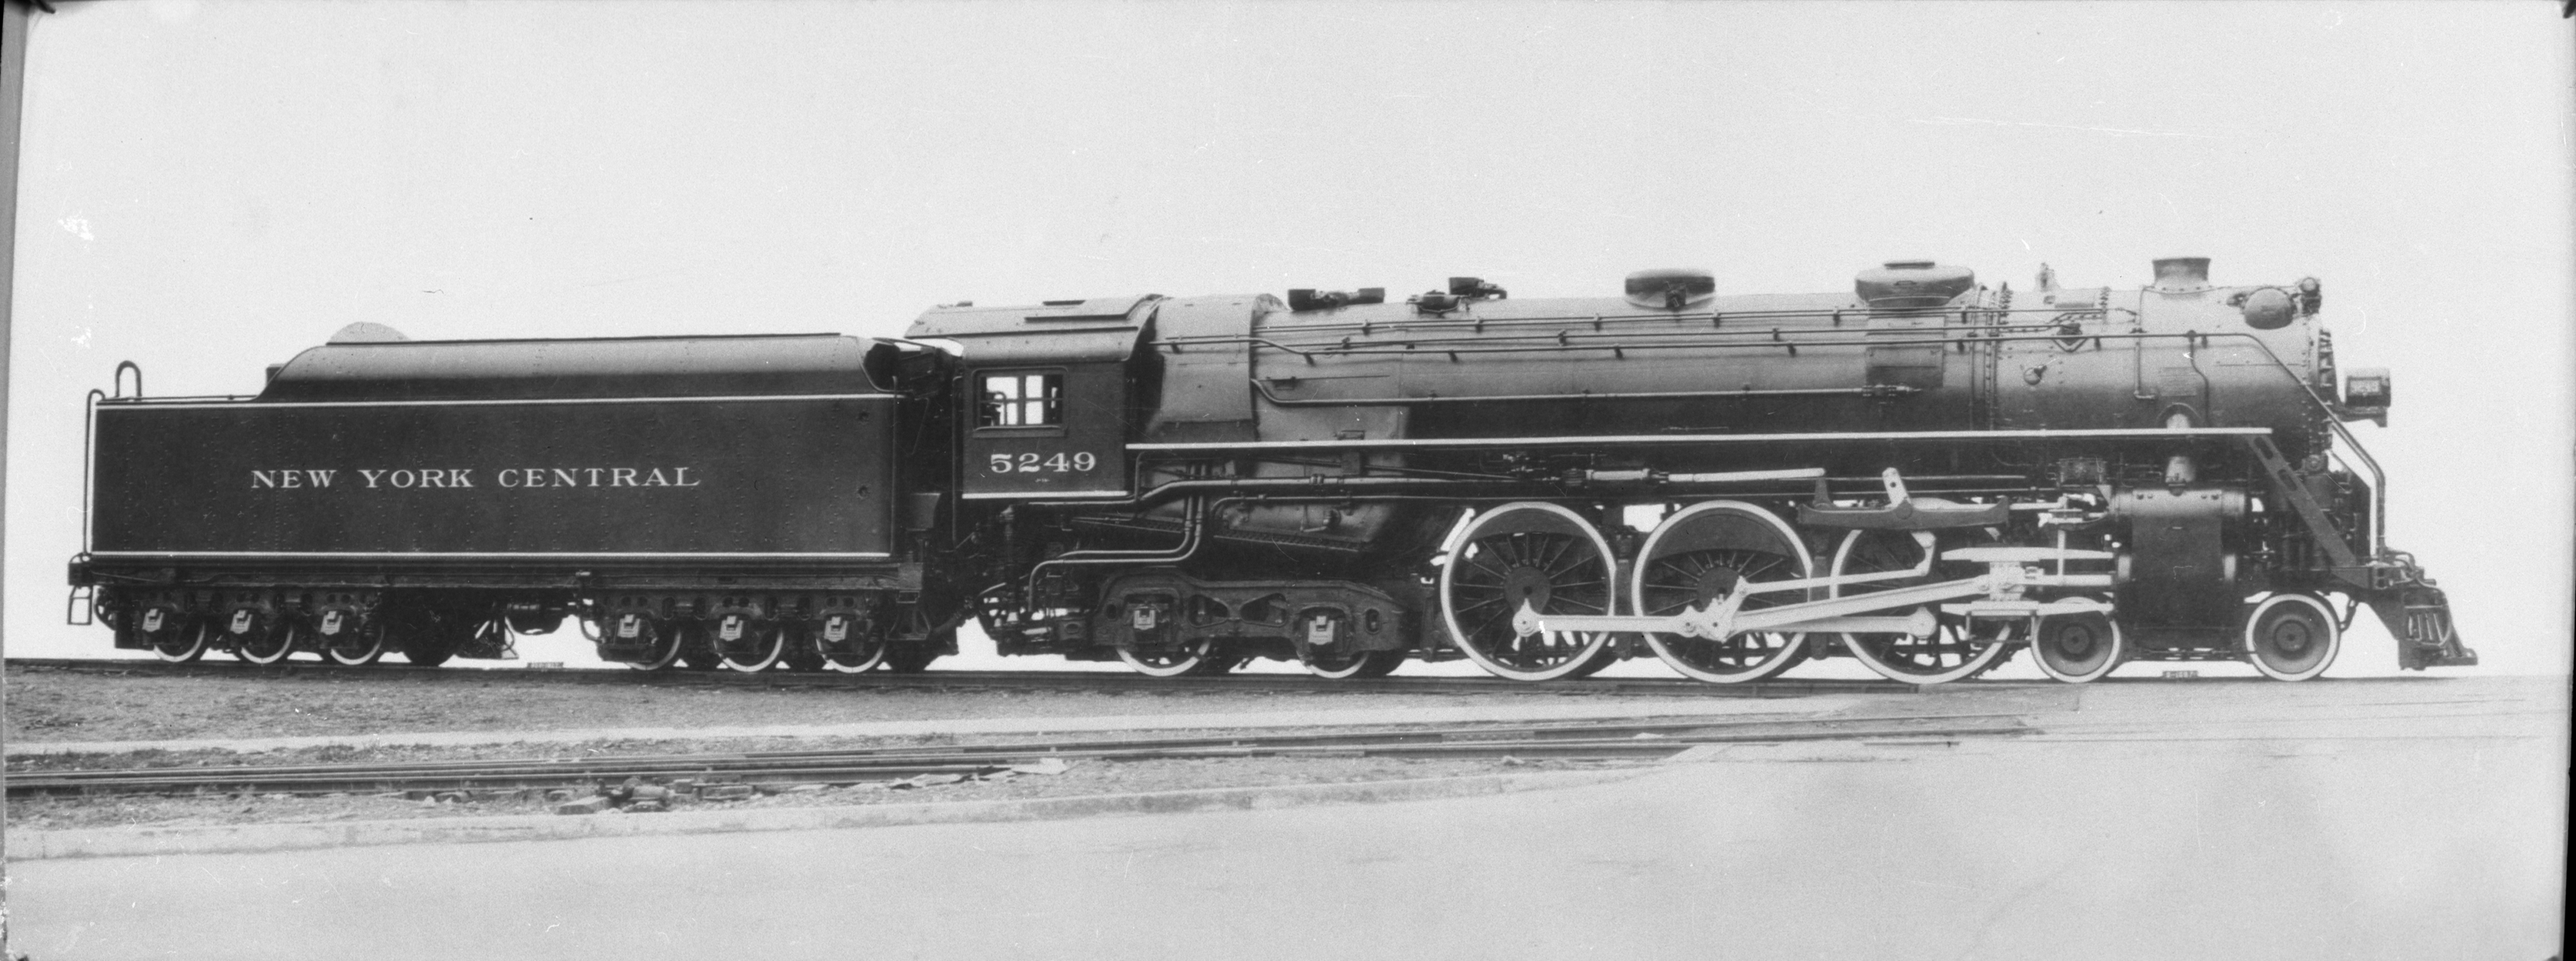 NYC Hudson 4 6 4 Photos http://commons.wikimedia.org/wiki/File:New_York_Central_4-6-4_Hudson_locomotive,_5249_(CJ_Allen,_Steel_Highway,_1928).jpg